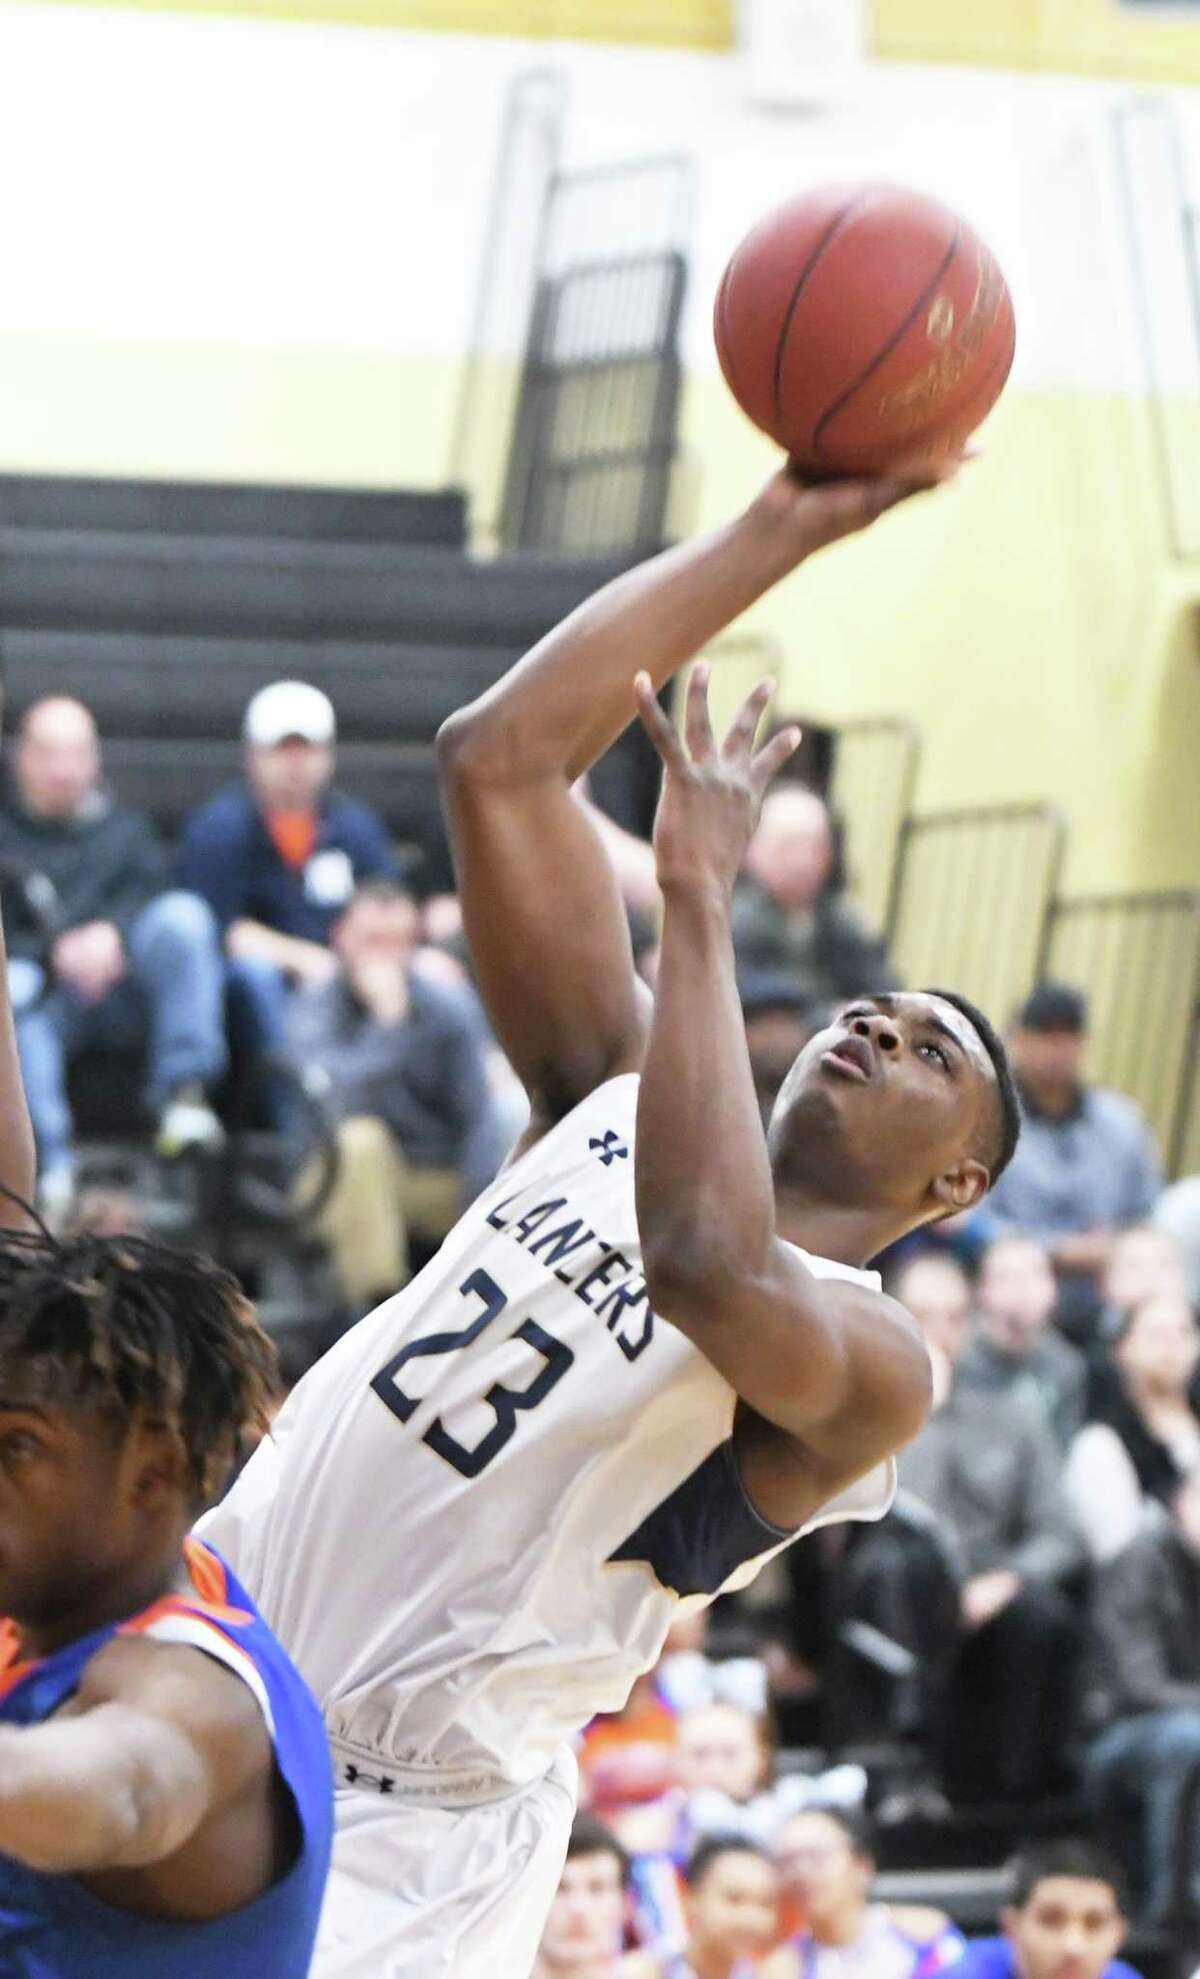 Notre Dame?'s Josh Reaves makes a shot during the Division I boys basketball quarterfinals between Danbury and Notre Dame-Fairfield at Trumbull High, March 12, 2018.